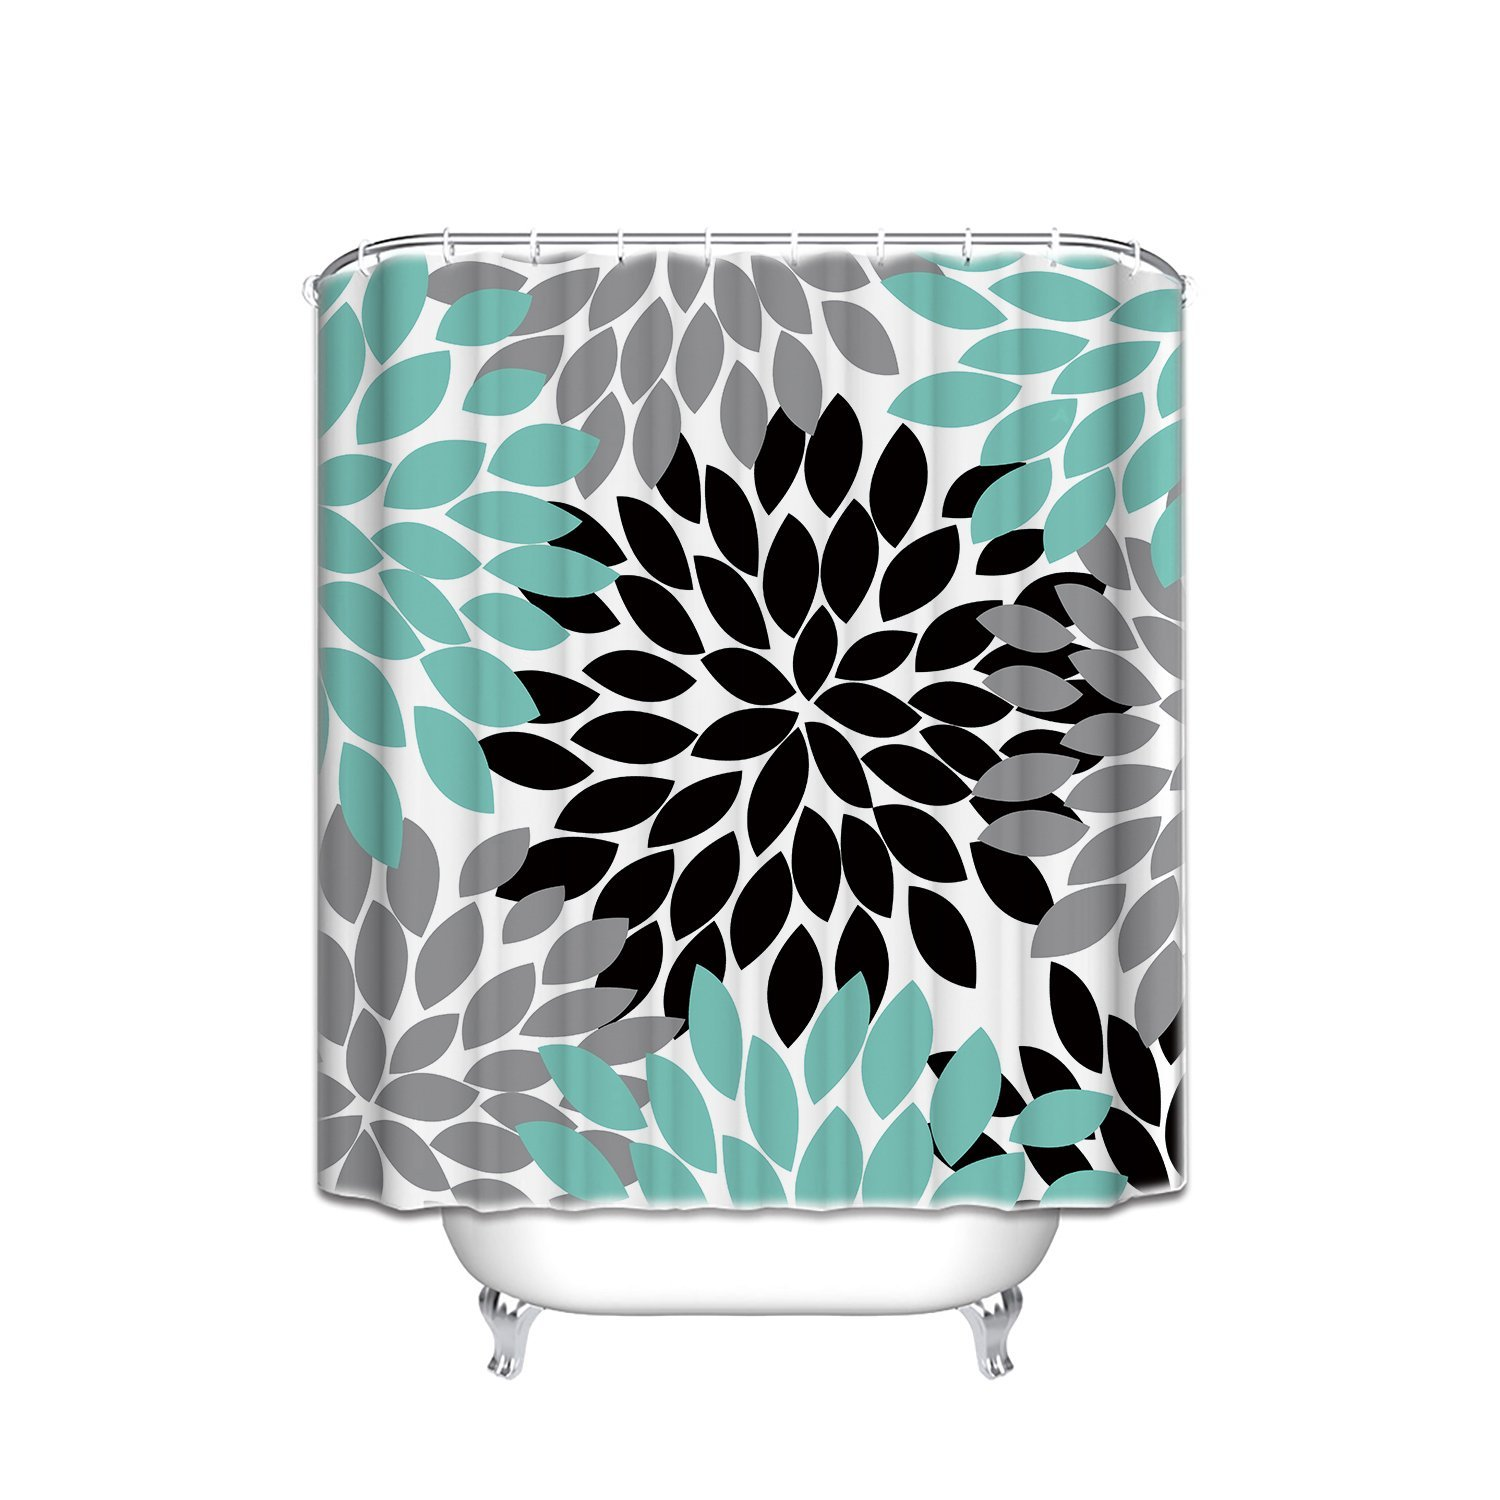 Teal and black shower curtain - Memory Home Customize Waterproof Black Grey Green Dahlia Floral Print Polyester Fabric Bathroom Shower Curtain